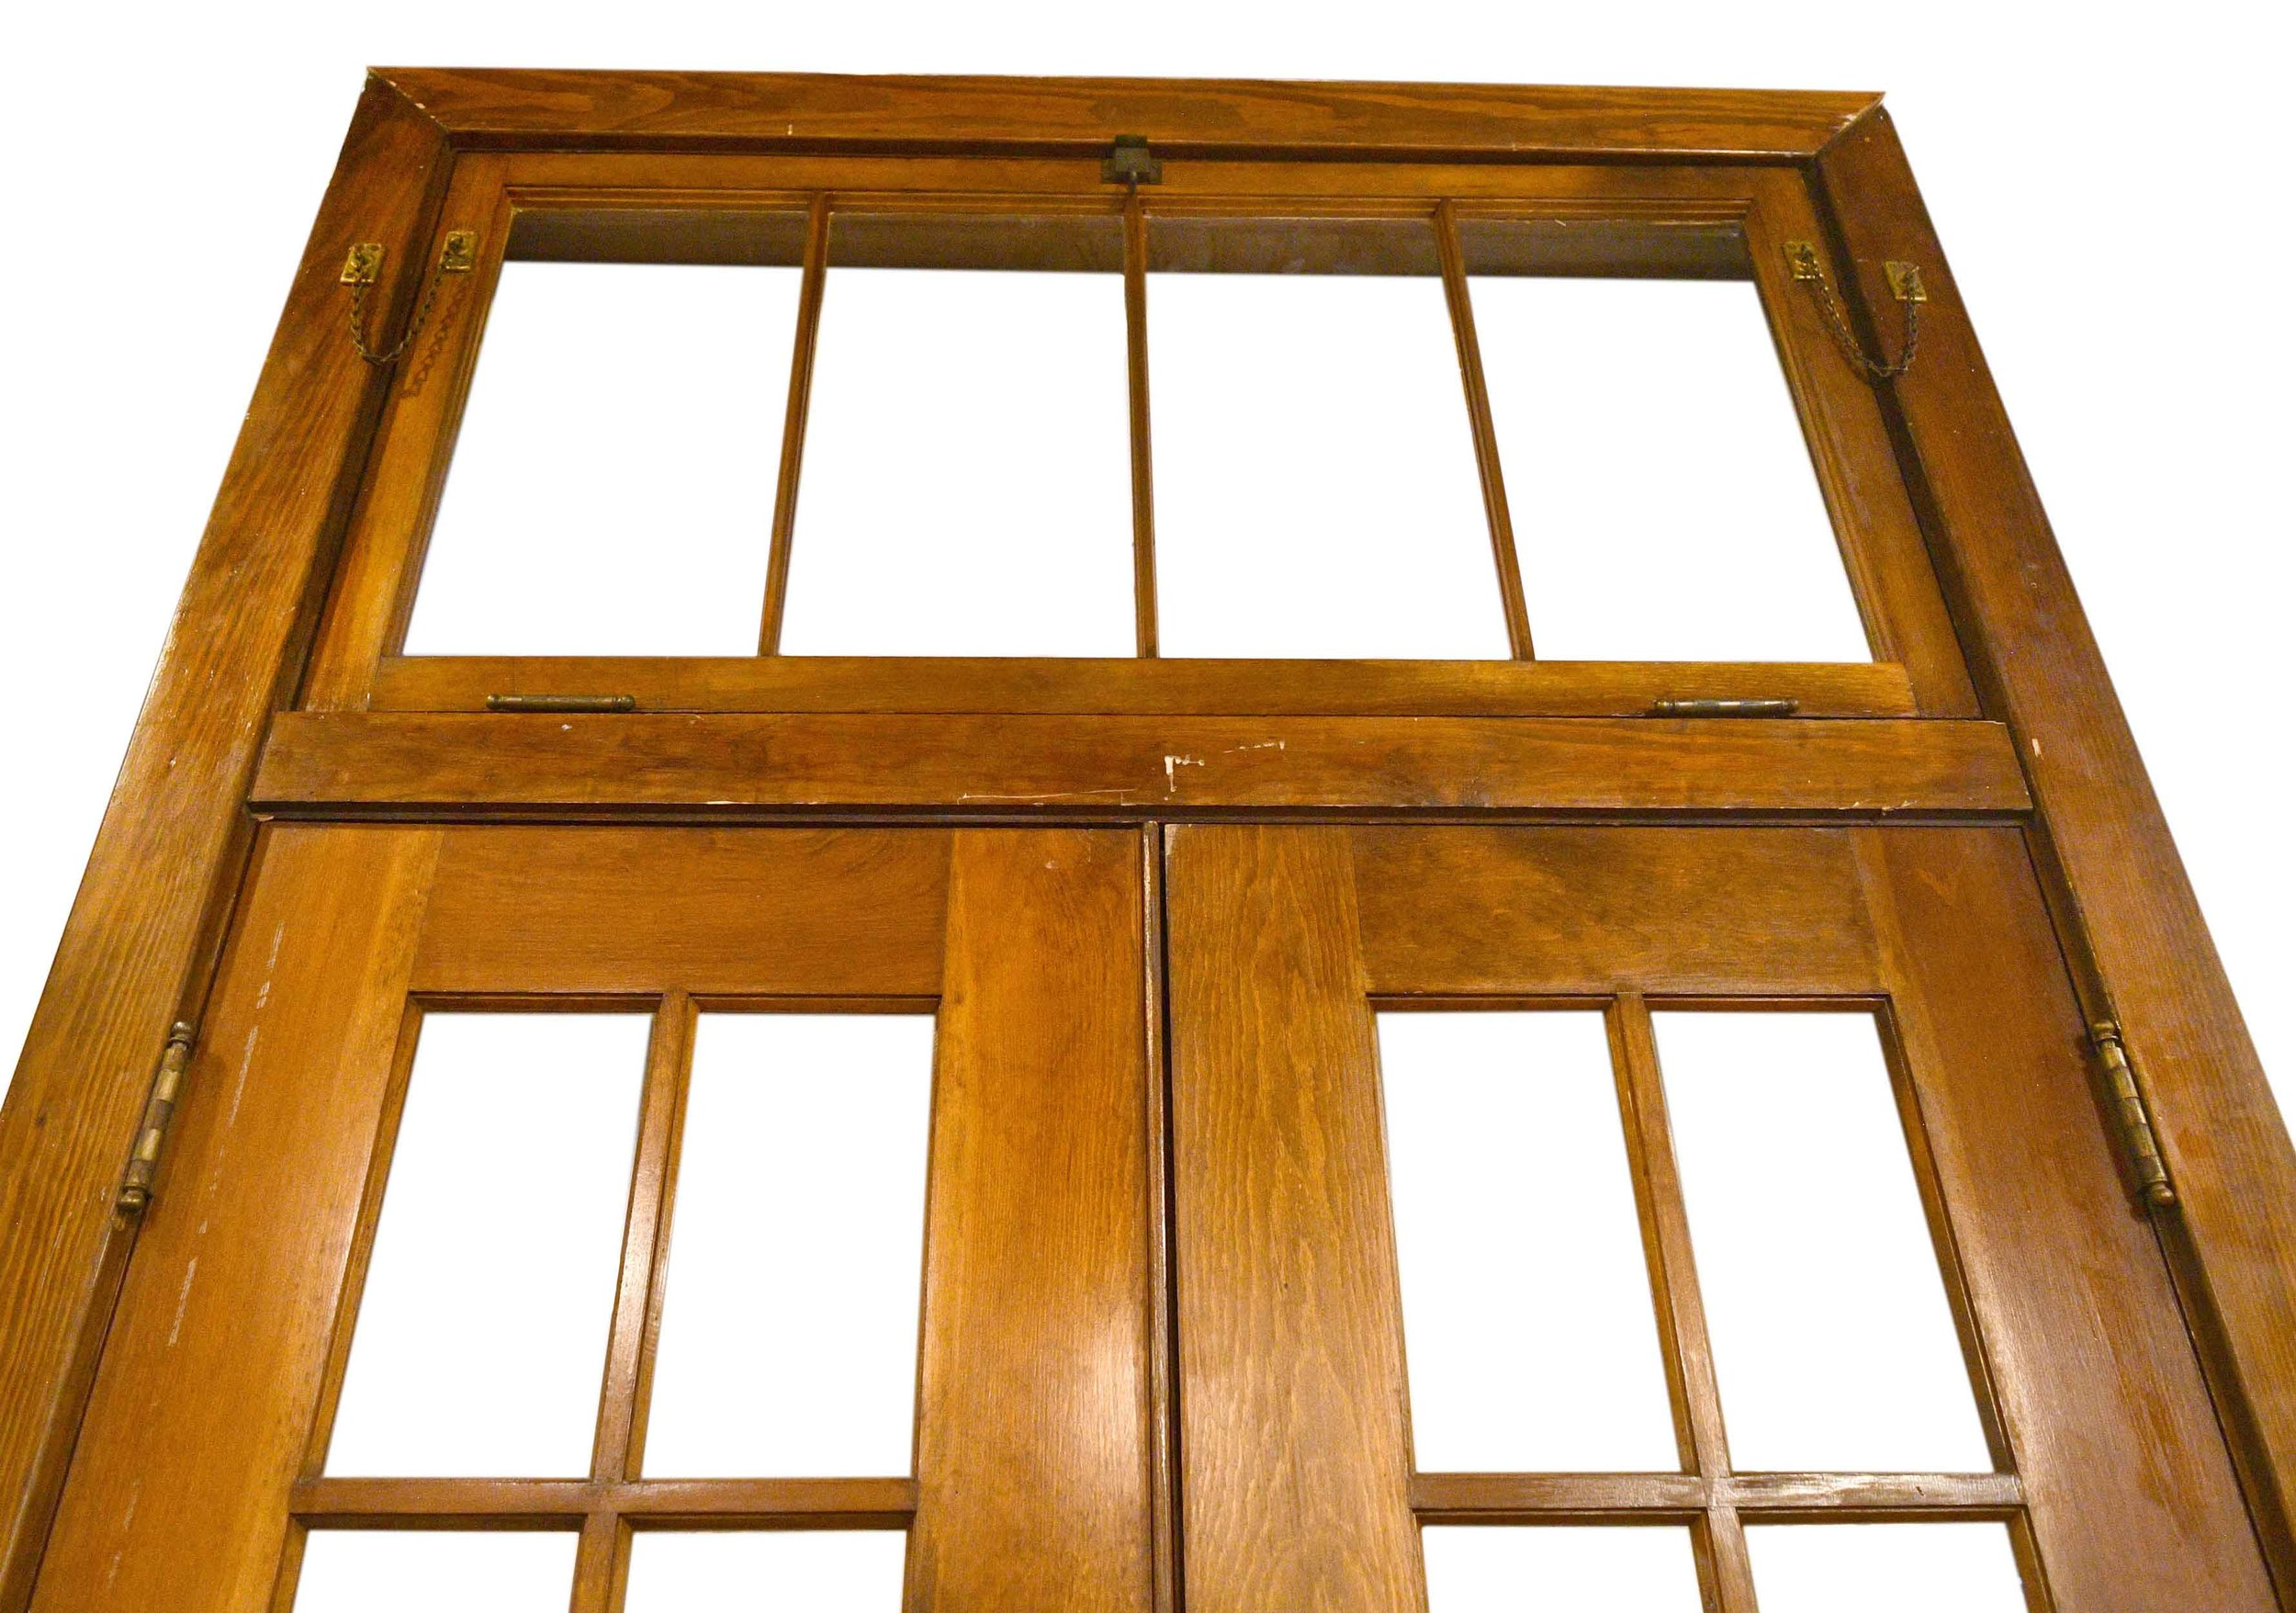 10-pane-glass-door-with-transom-3.jpg